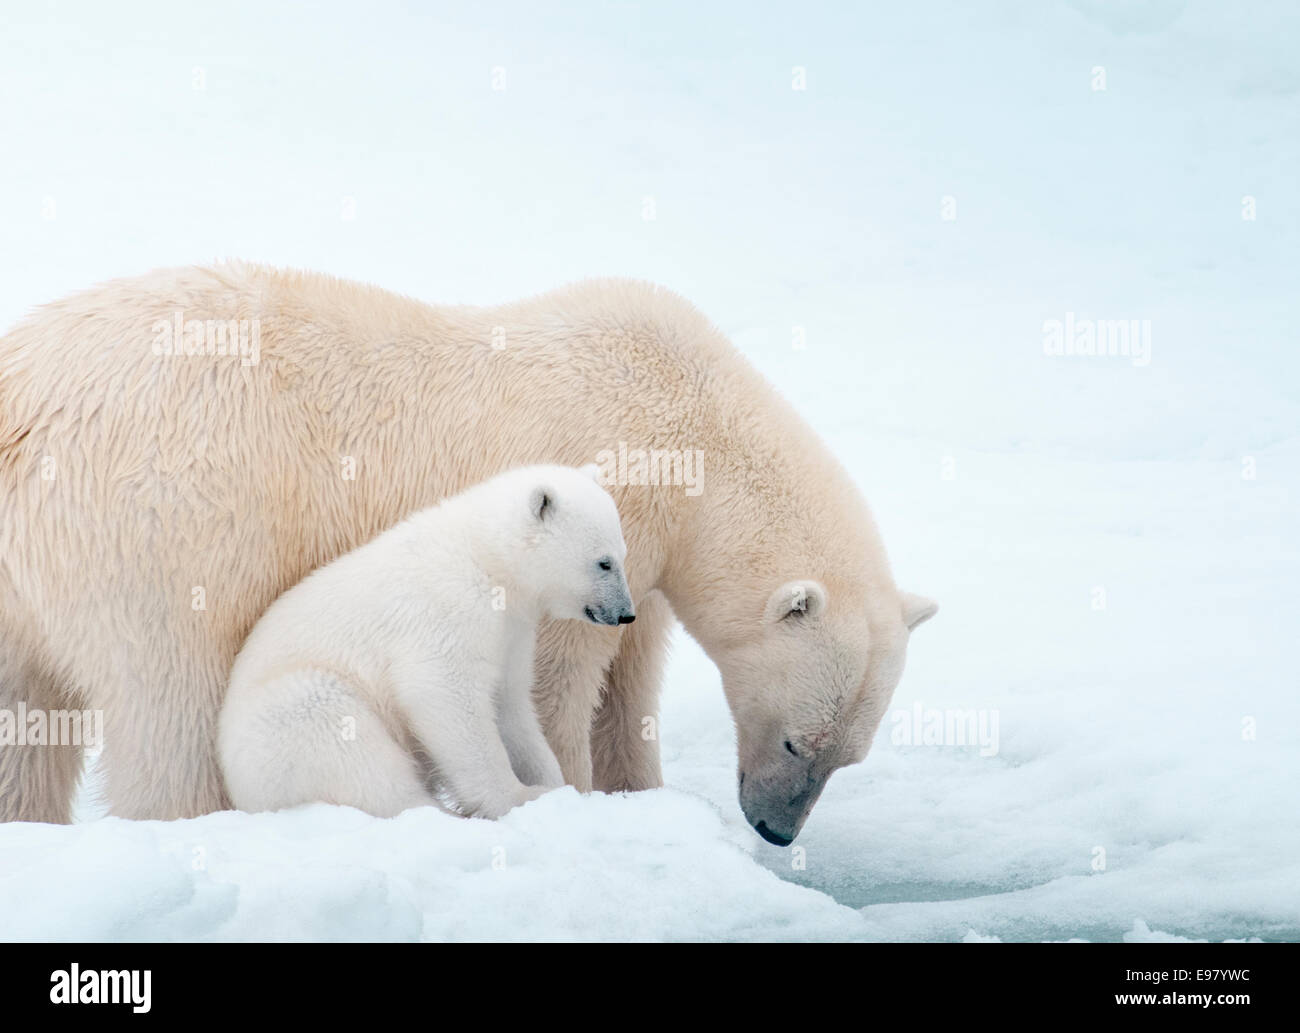 polar-bear-mother-with-cub-close-beside-her-ursus-maritimus-olgastretet-E97YWC.jpg